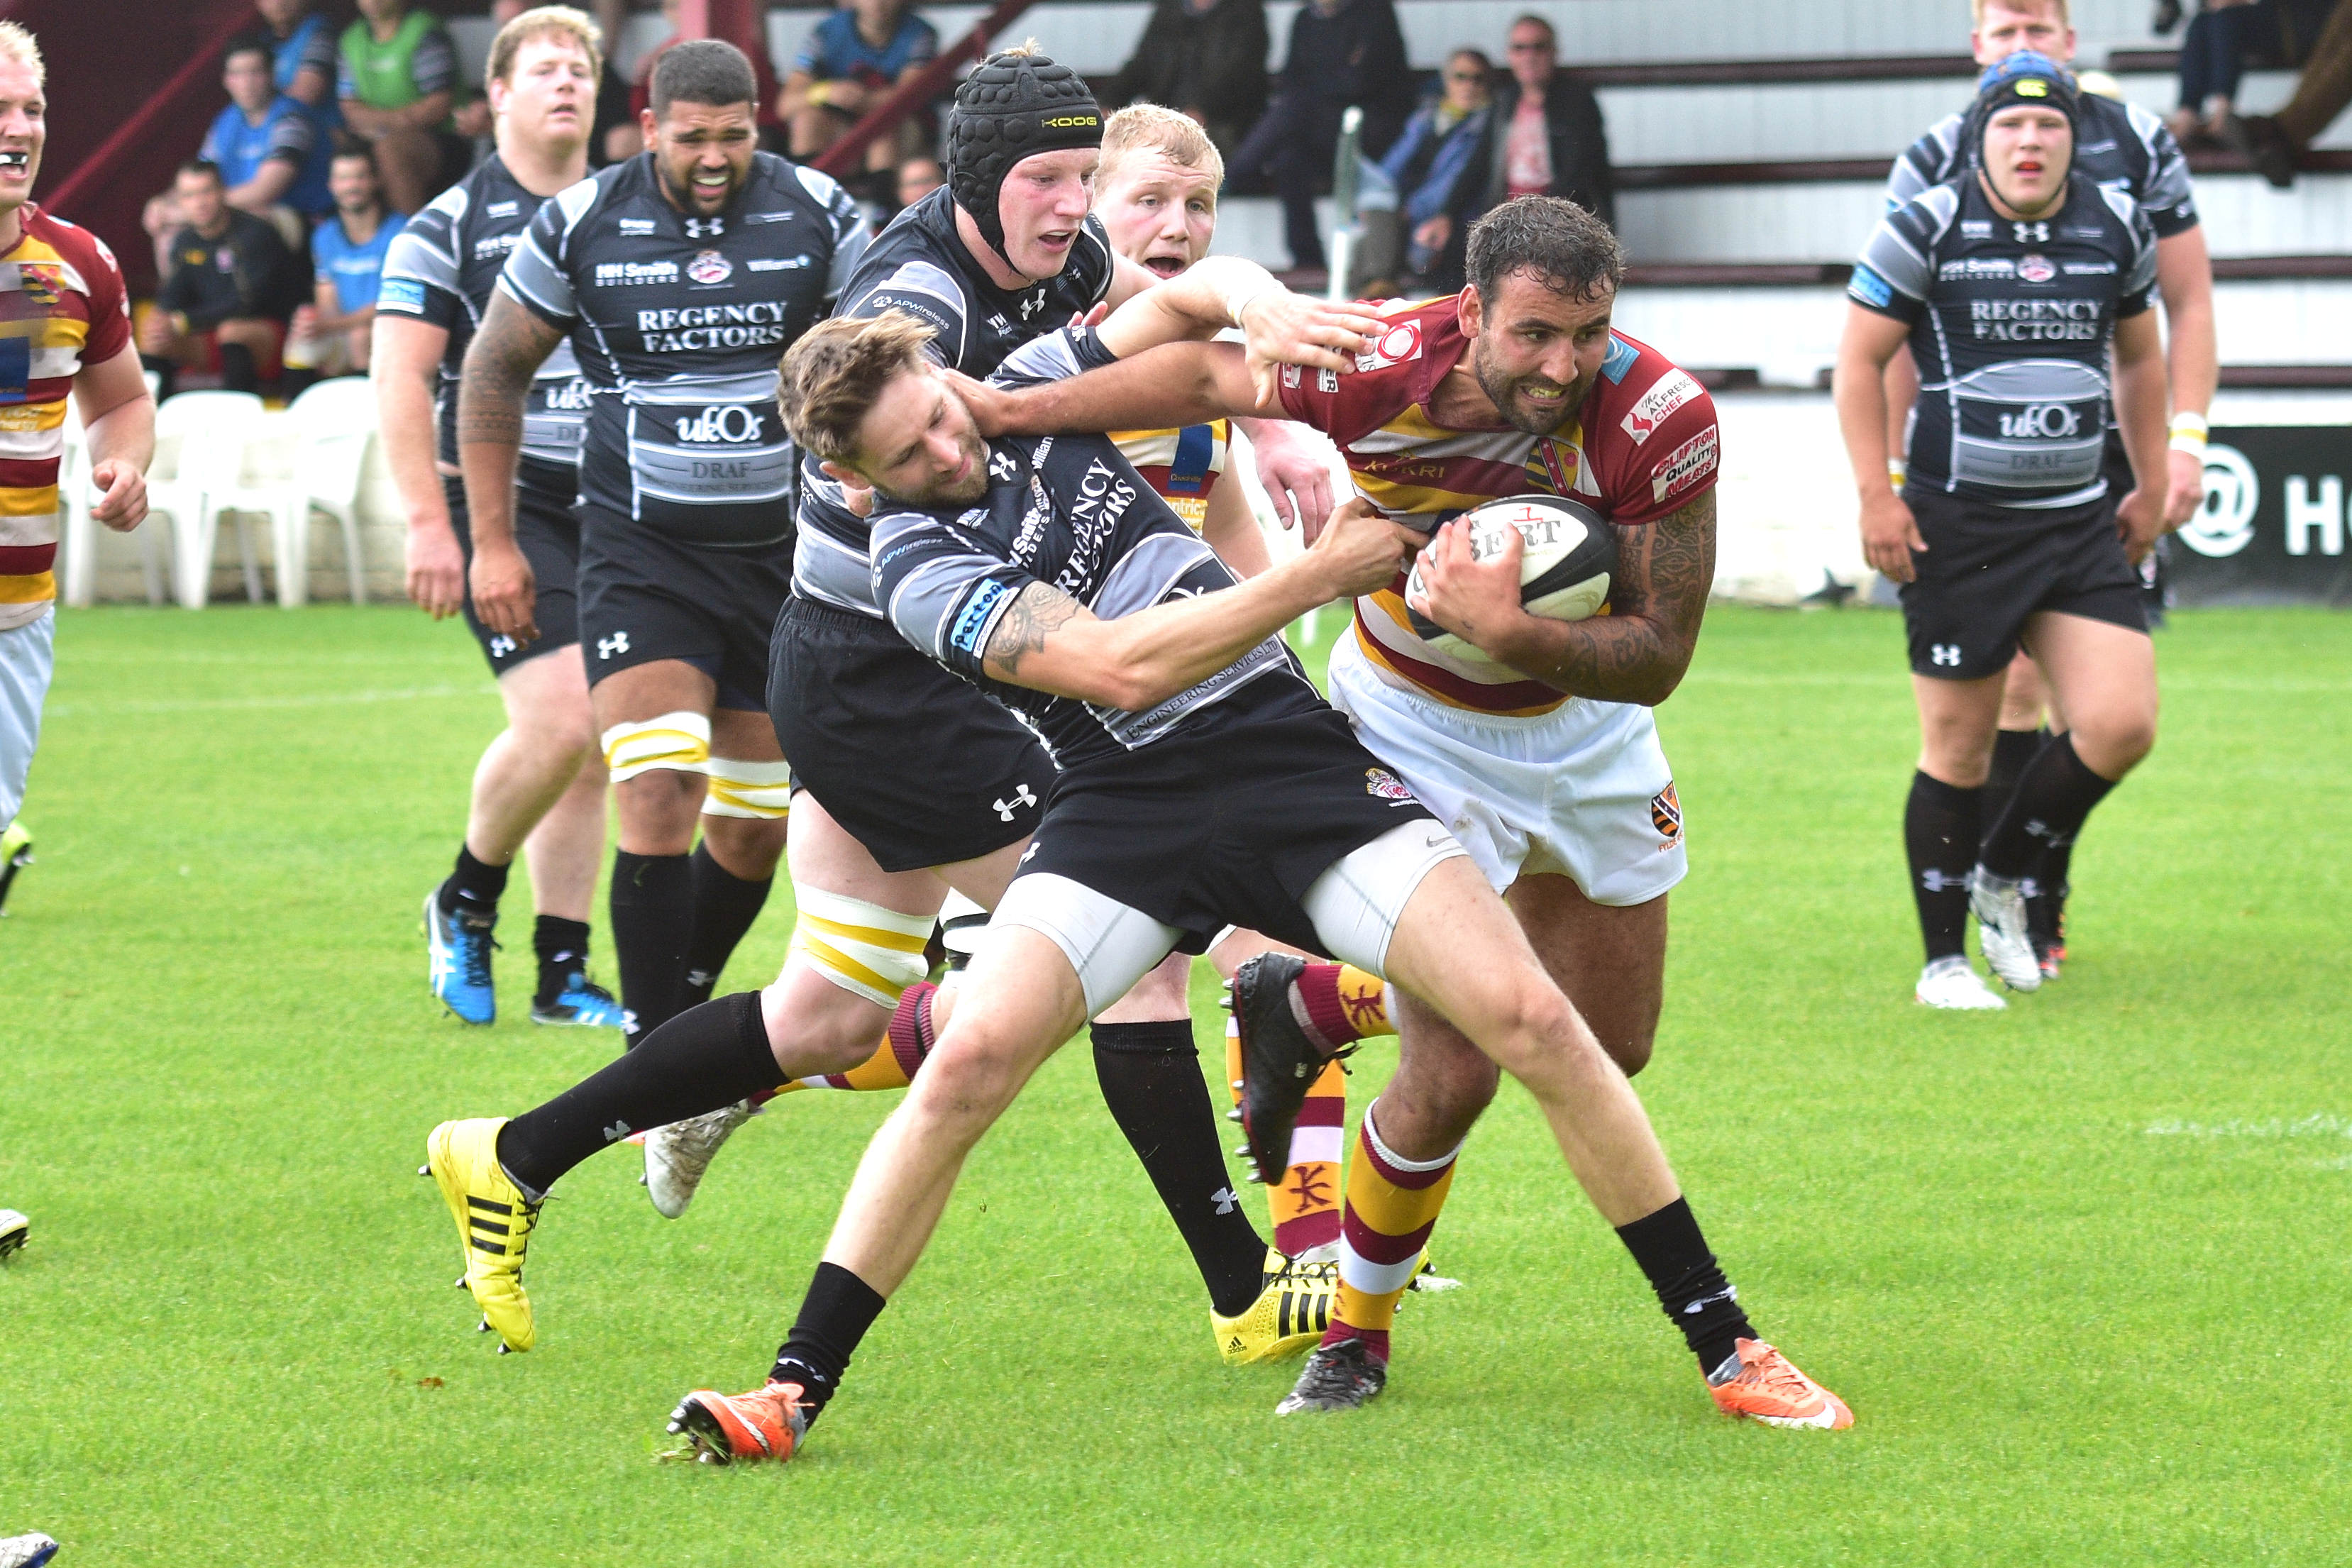 Fylde name squad for Sedgley Tigers game on Saturday